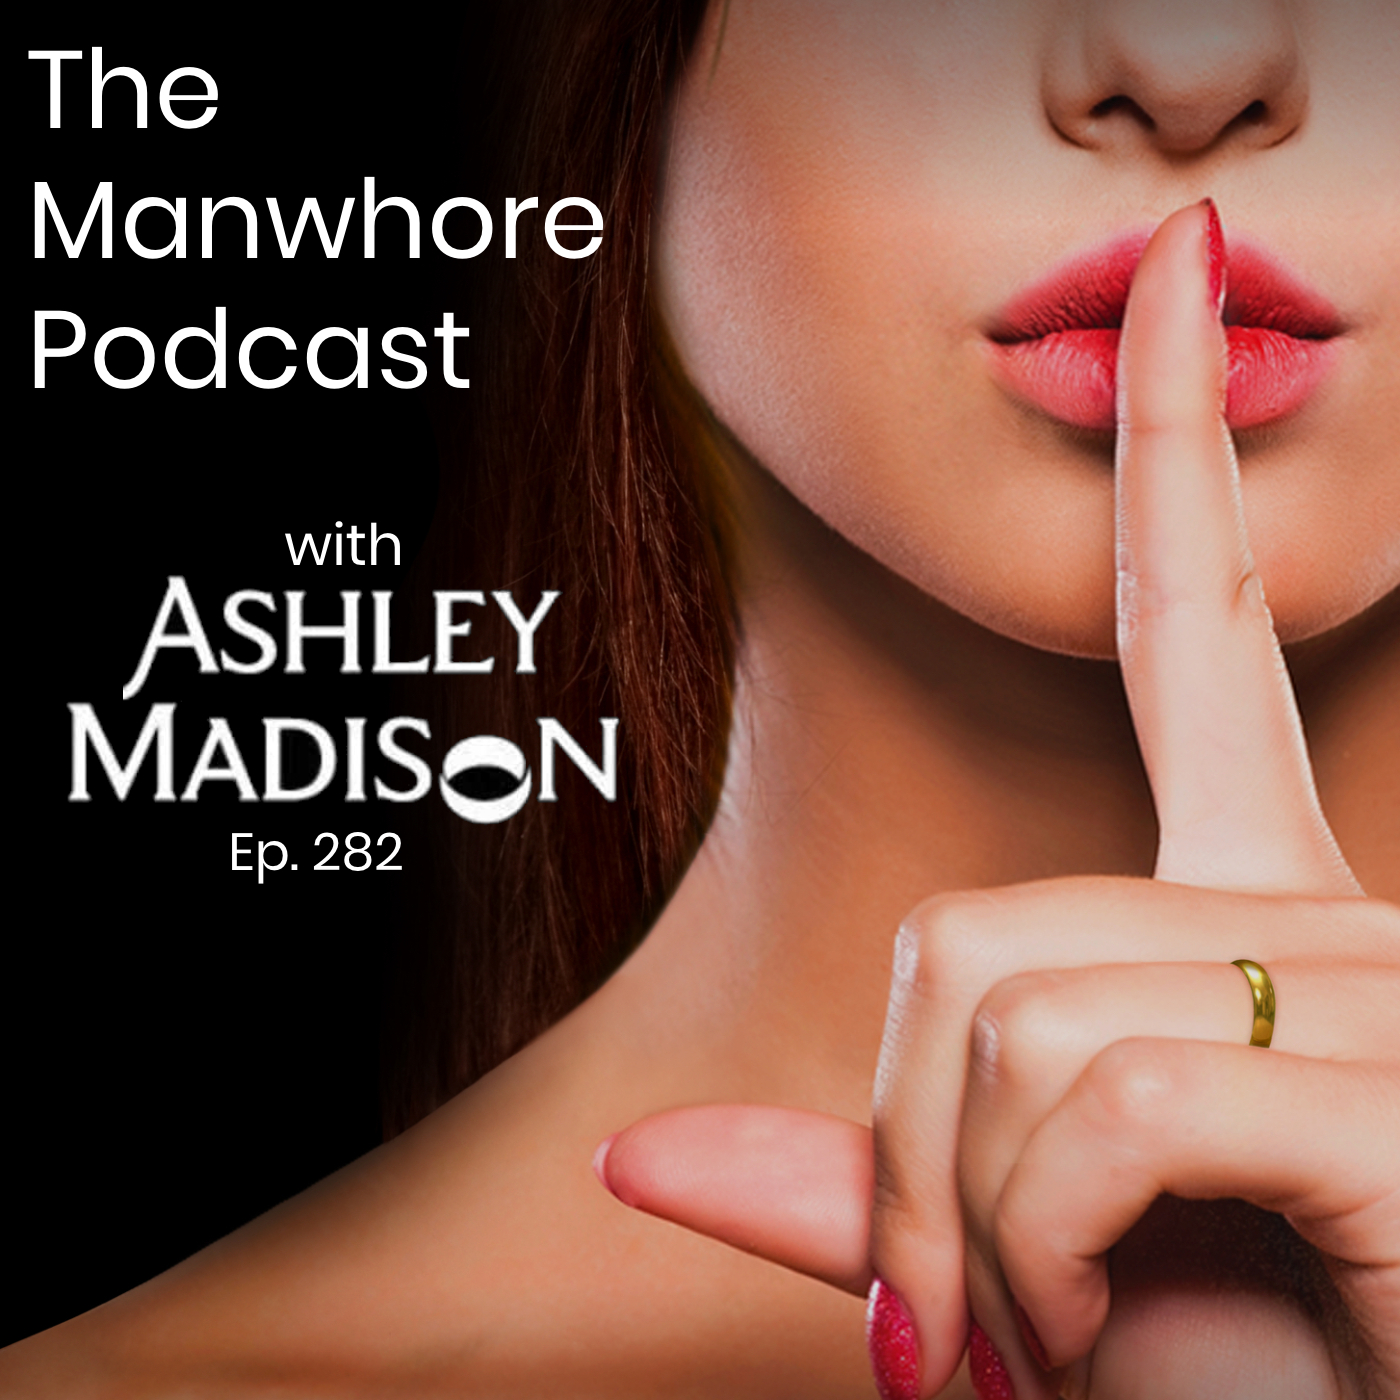 The Manwhore Podcast: A Sex-Positive Quest - Ep. 282: Cheating Coaches, Infidelity, and The Ashley Madison Hack